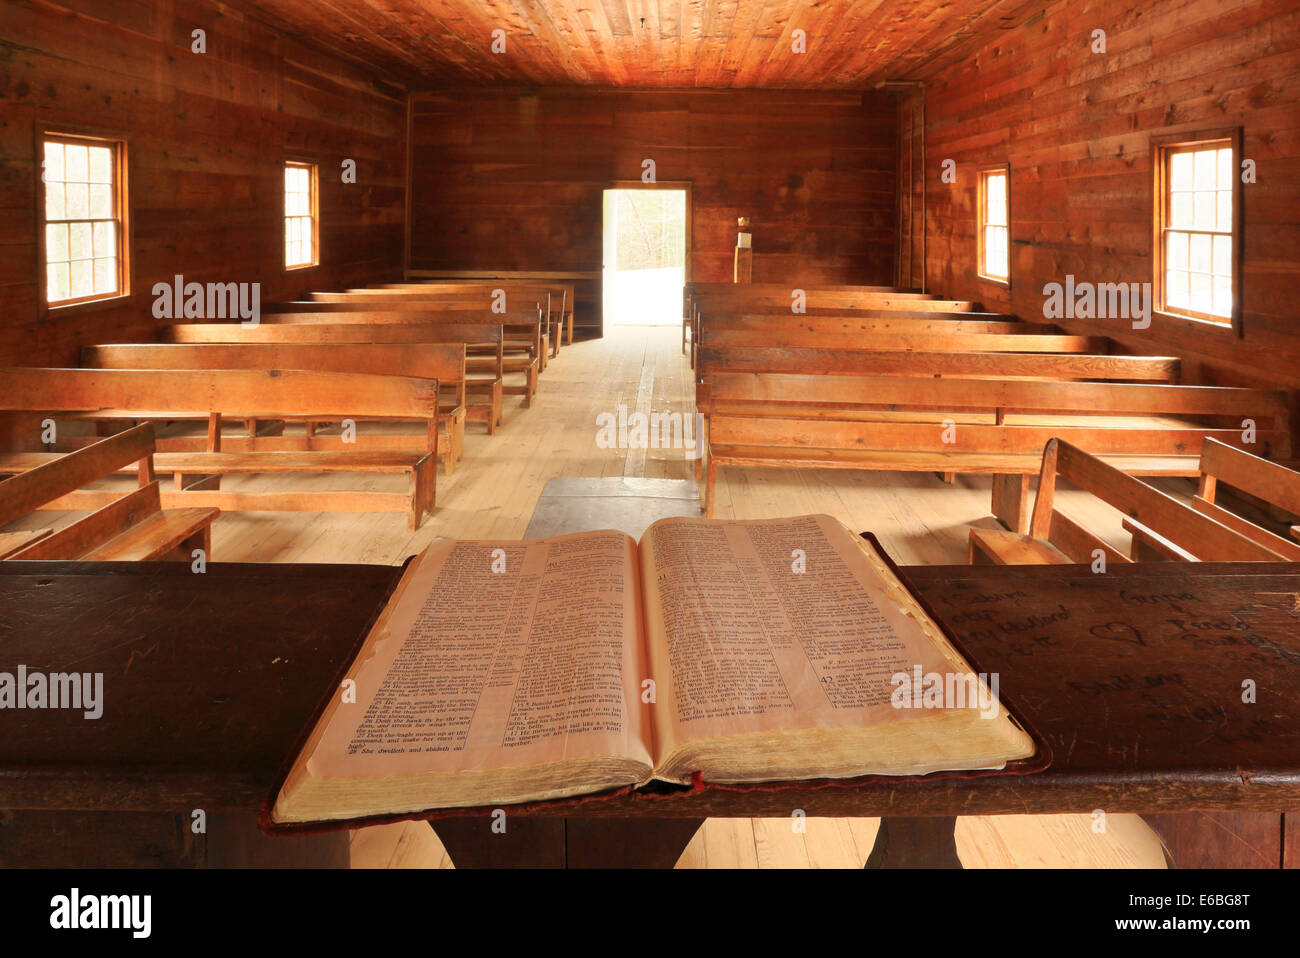 Primitive Baptist Church, Cades Cove, Great Smoky Mountains National Park, Tennessee, USA - Stock Image